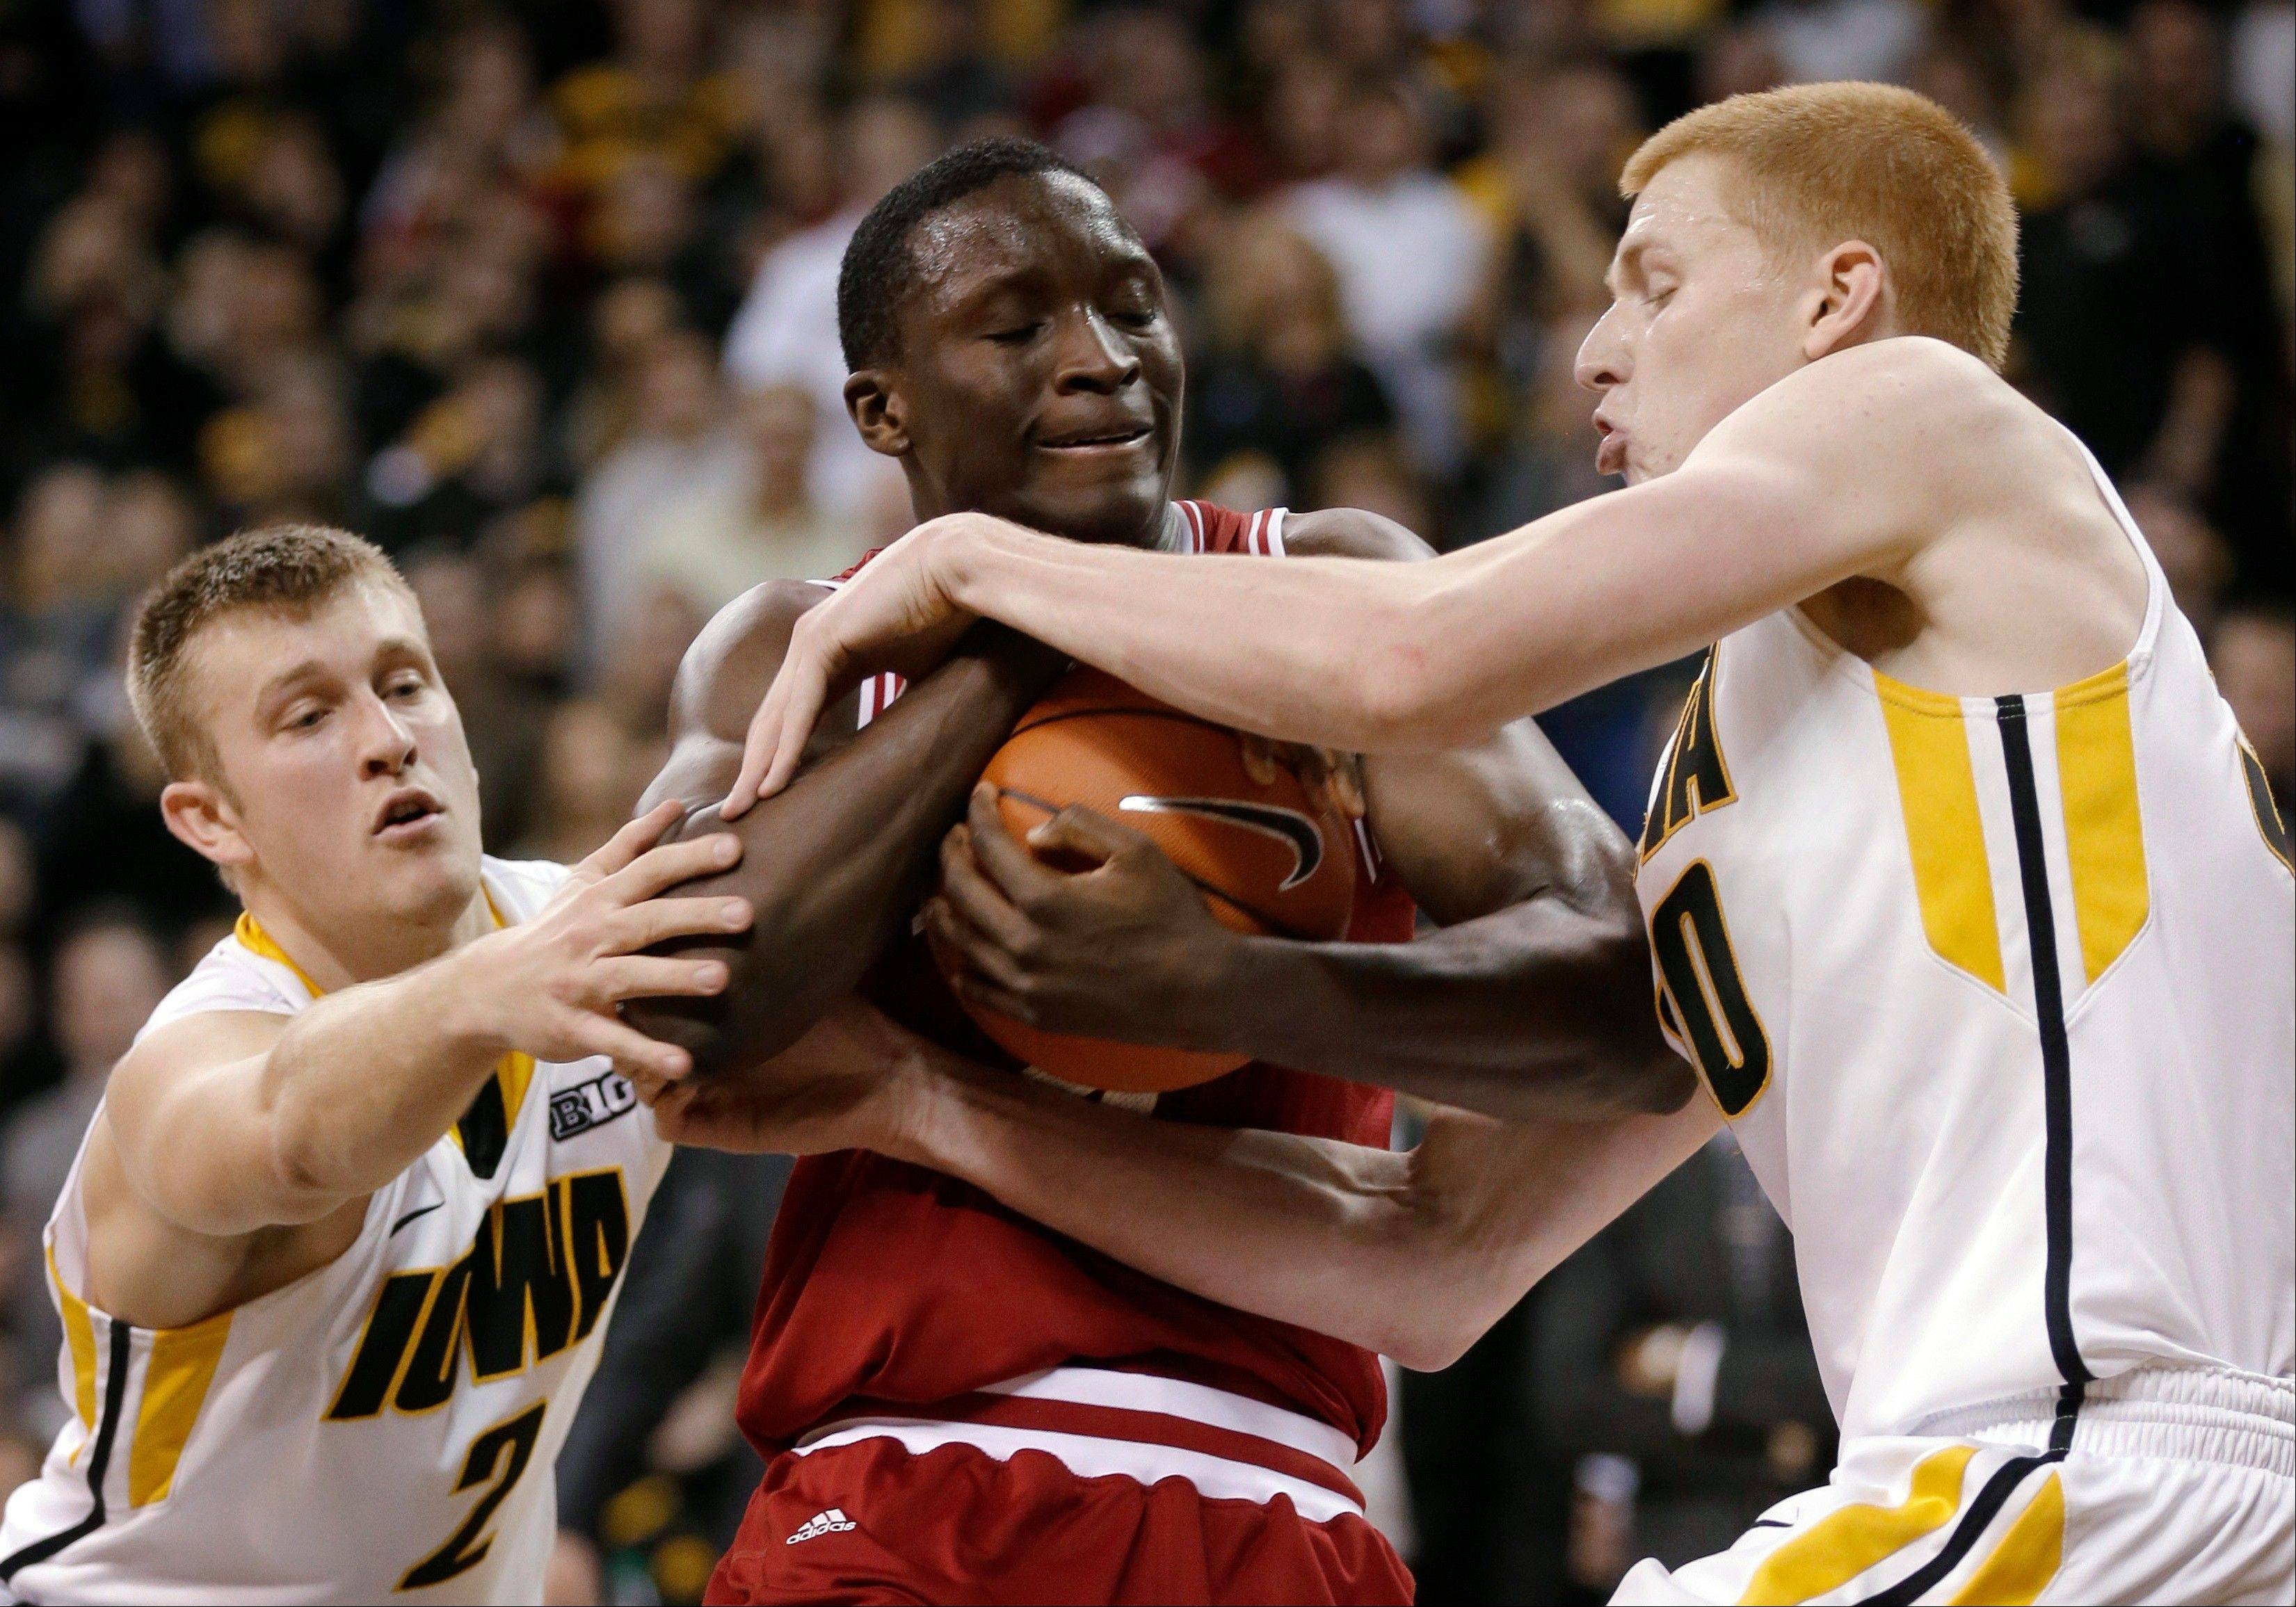 Iowa can't pull off upset of No. 5 Indiana